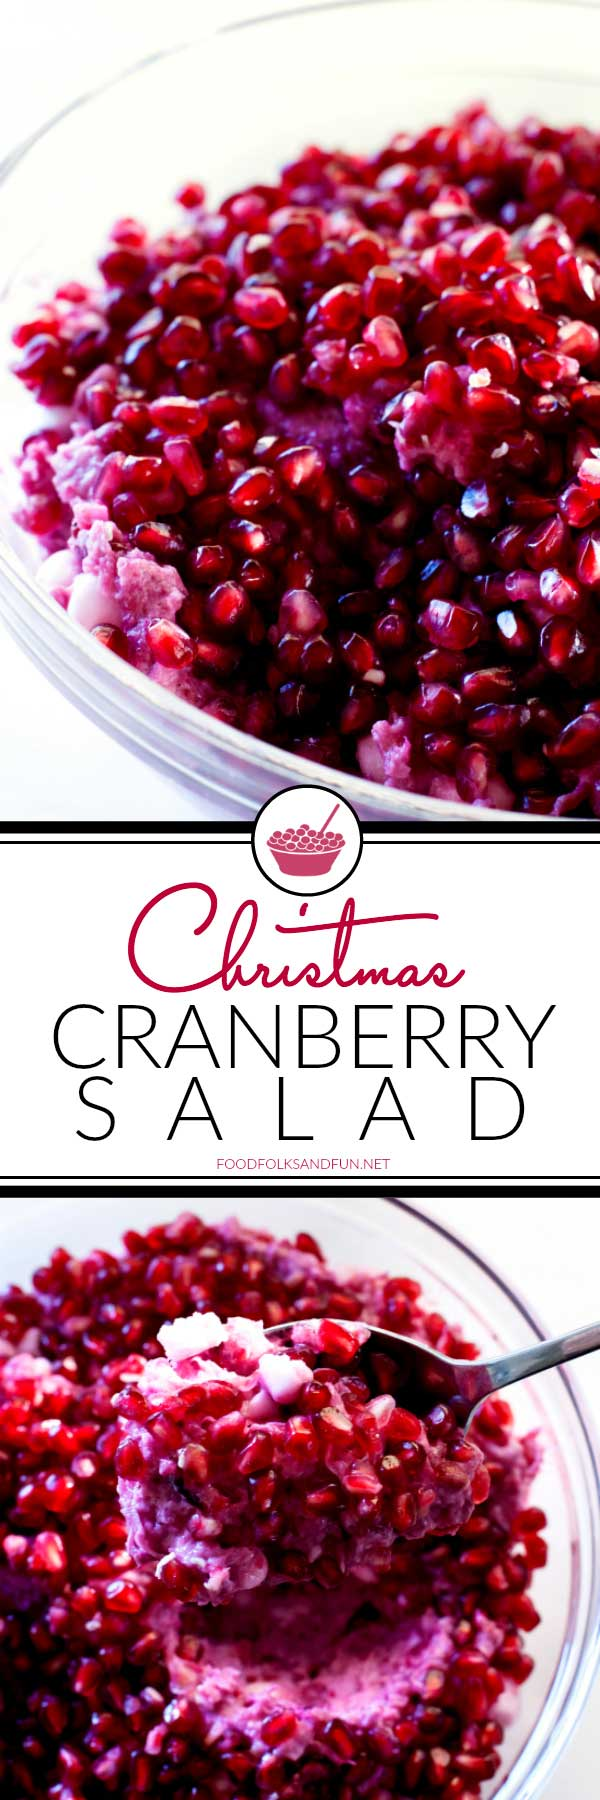 This Christmas Cranberry Salad is simply the best. It's loaded with tart cranberries, whipped cream, pineapple, coconut, marshmallows, and pomegranate seeds.